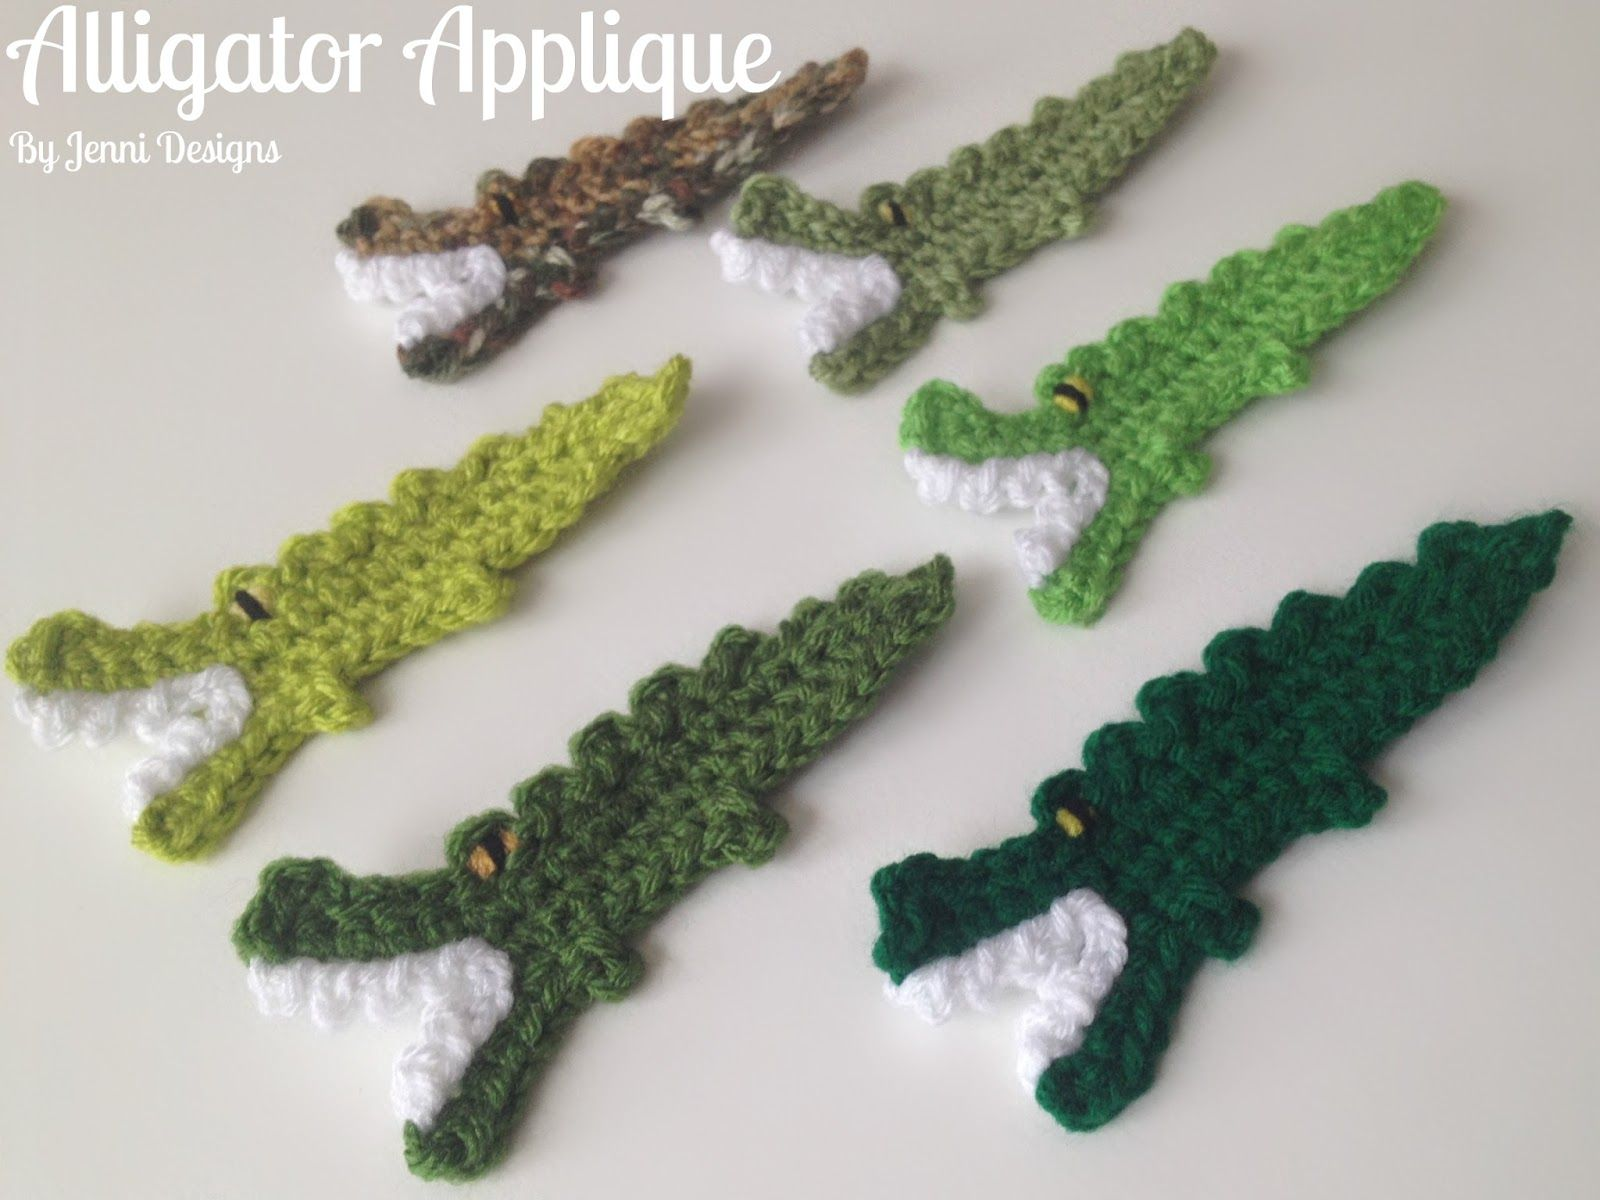 Free Crochet Pattern Tutorial: Alligator Applique | crafty ...